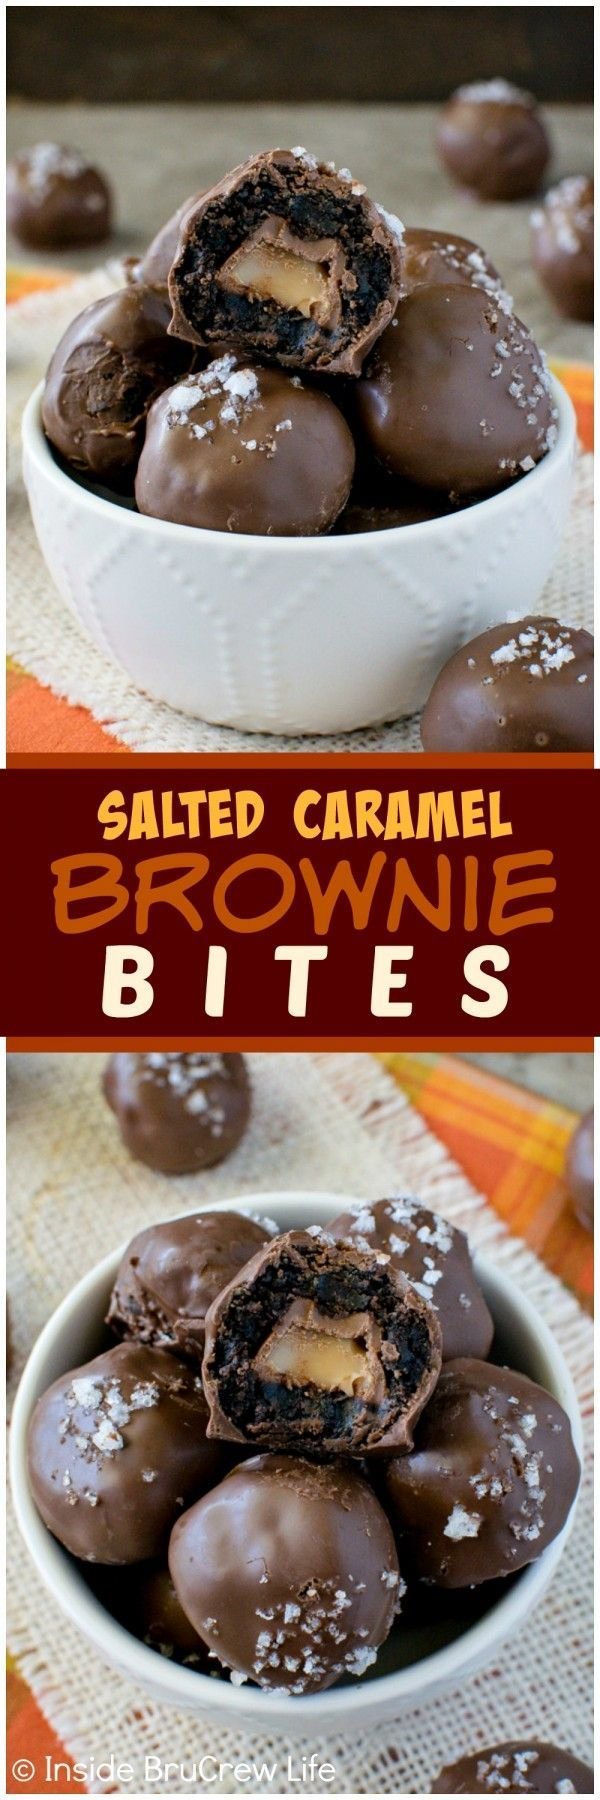 Salted Caramel Brownie Bites - hiding caramel candies inside chocolate makes these treats disappear in a hurry.  Great dessert recipe for parties! (Chocolate Desserts For Parties)